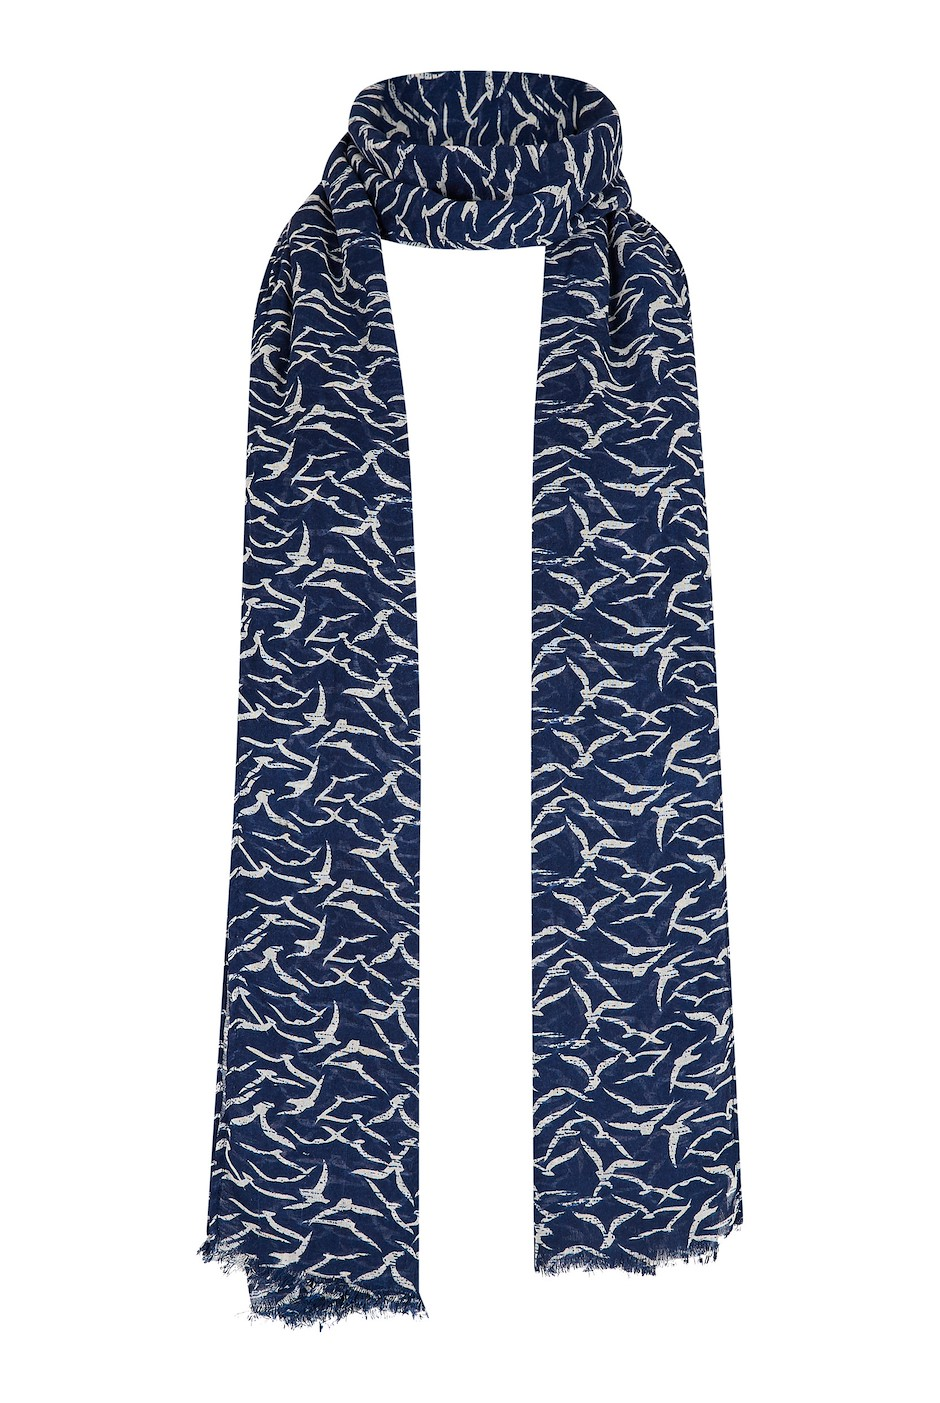 Alverton Patterned Scarf Dark Navy